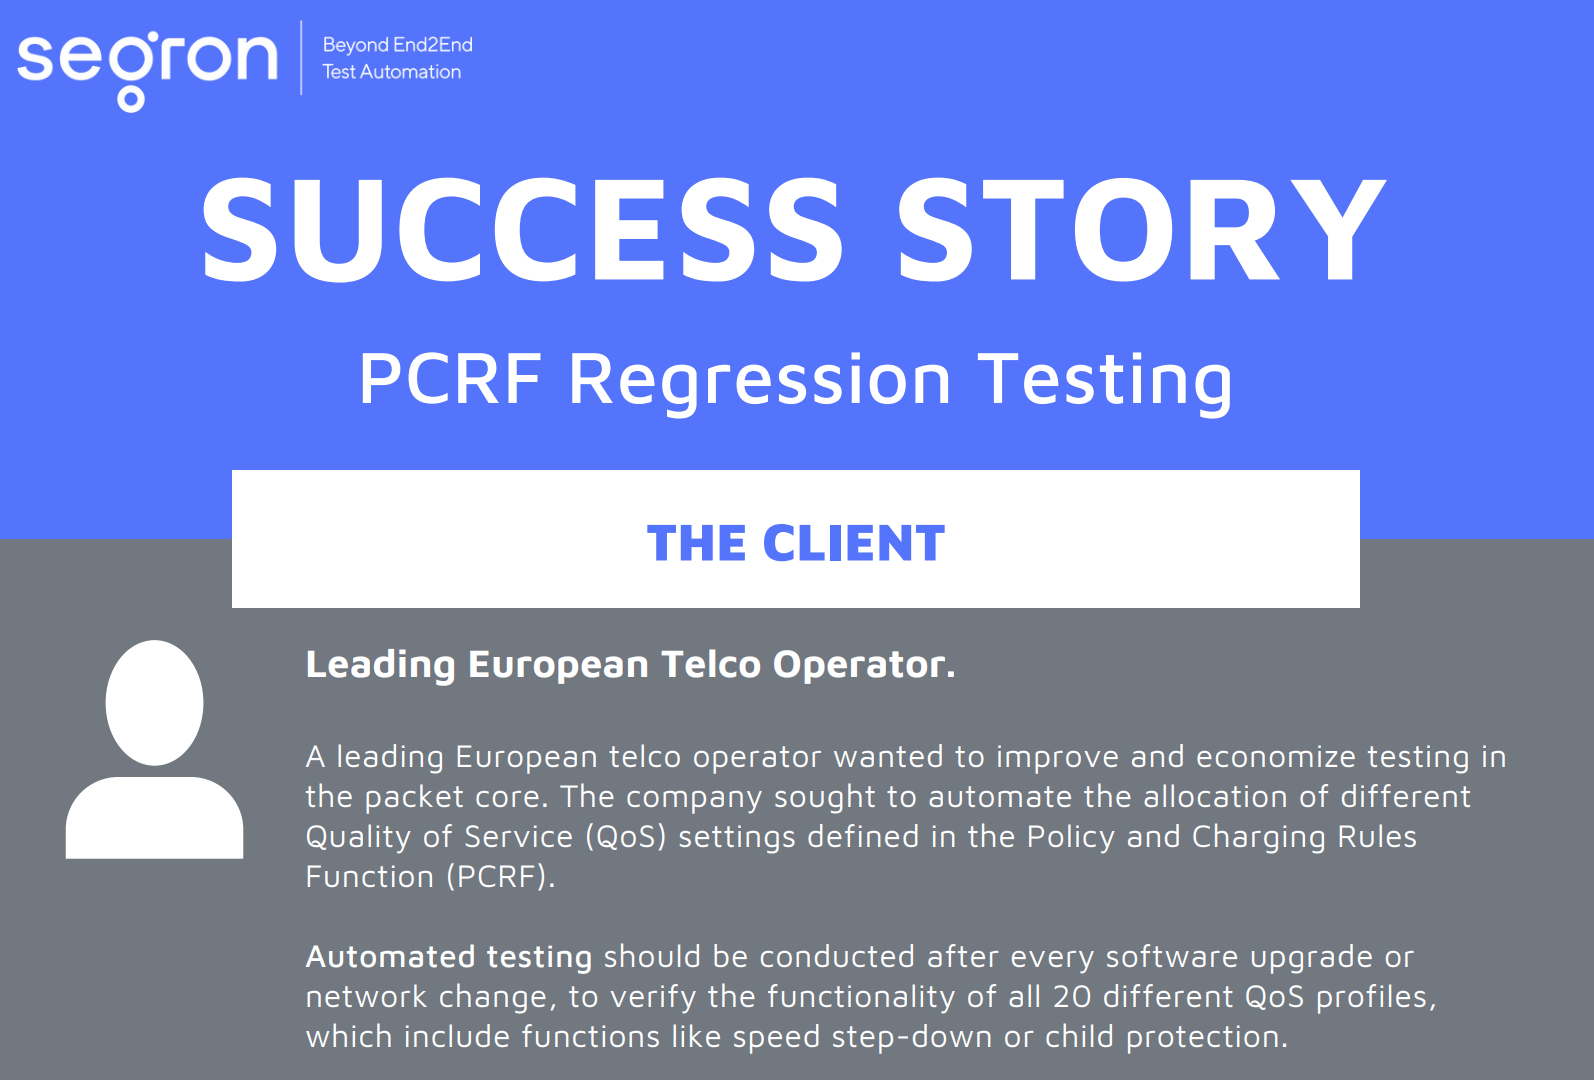 Learn more about PCRF regression testing automation